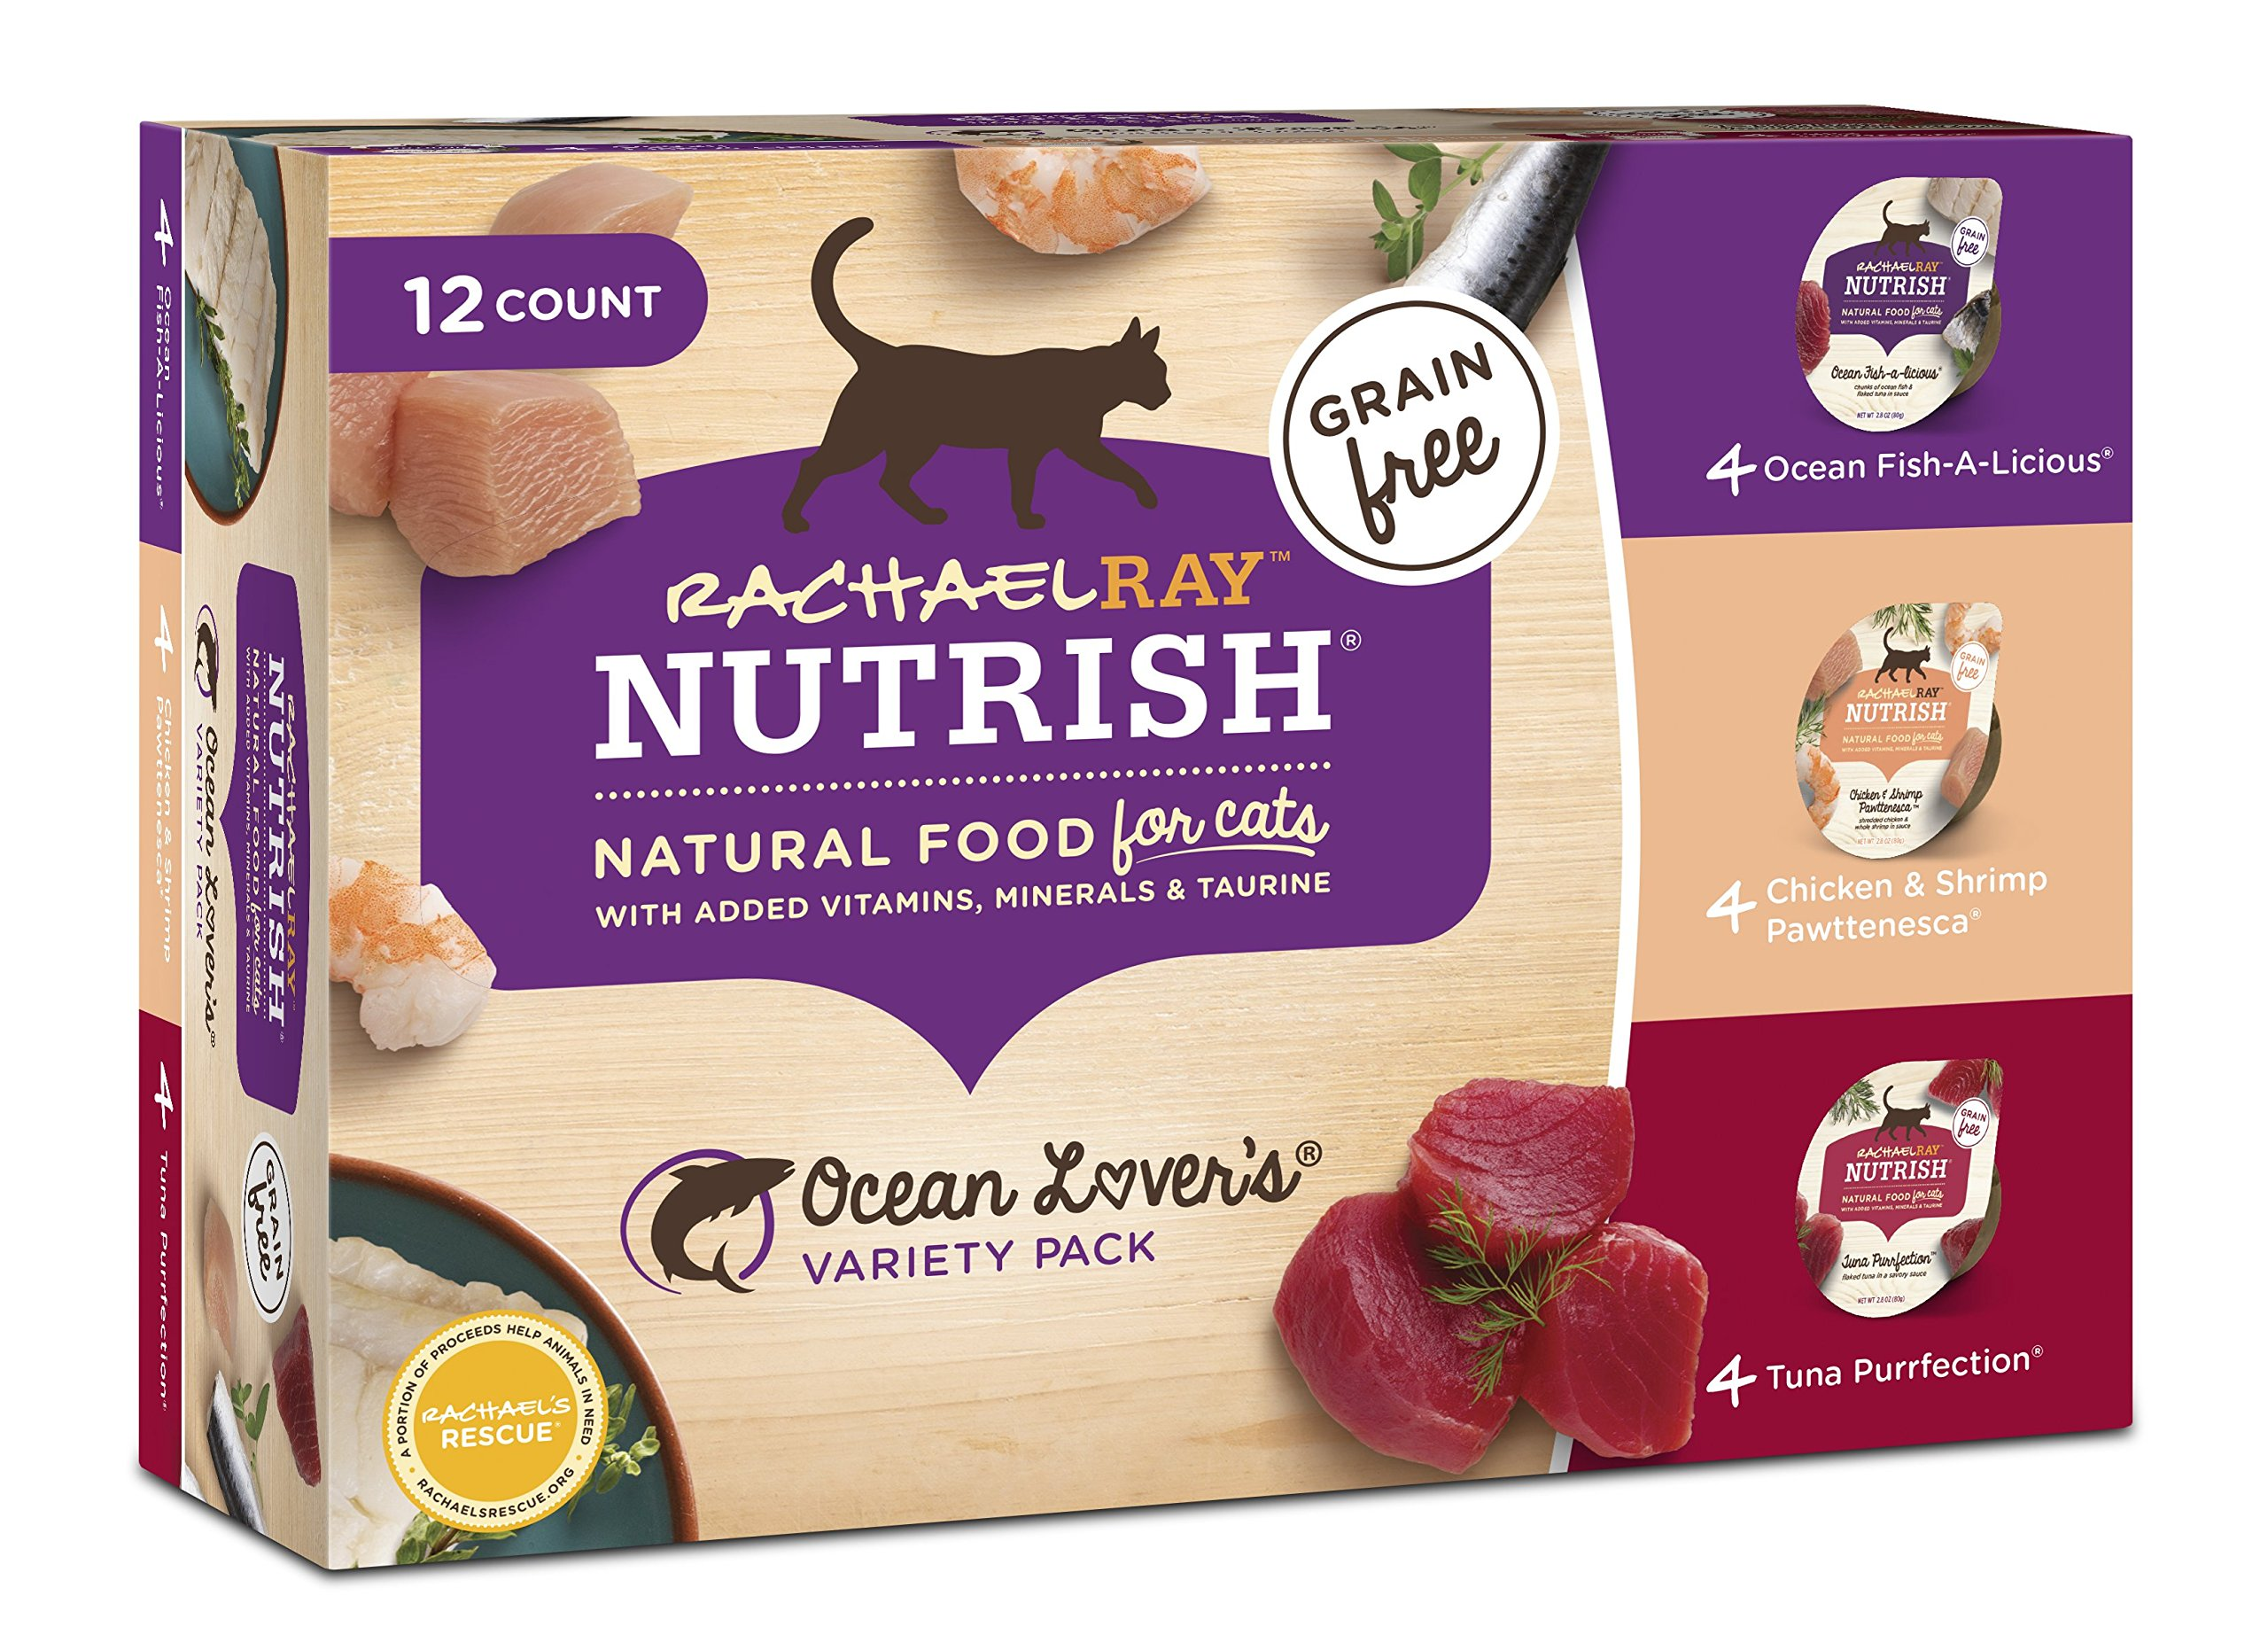 Rachael Ray Nutrish Wet Cat Food Kain Lapp